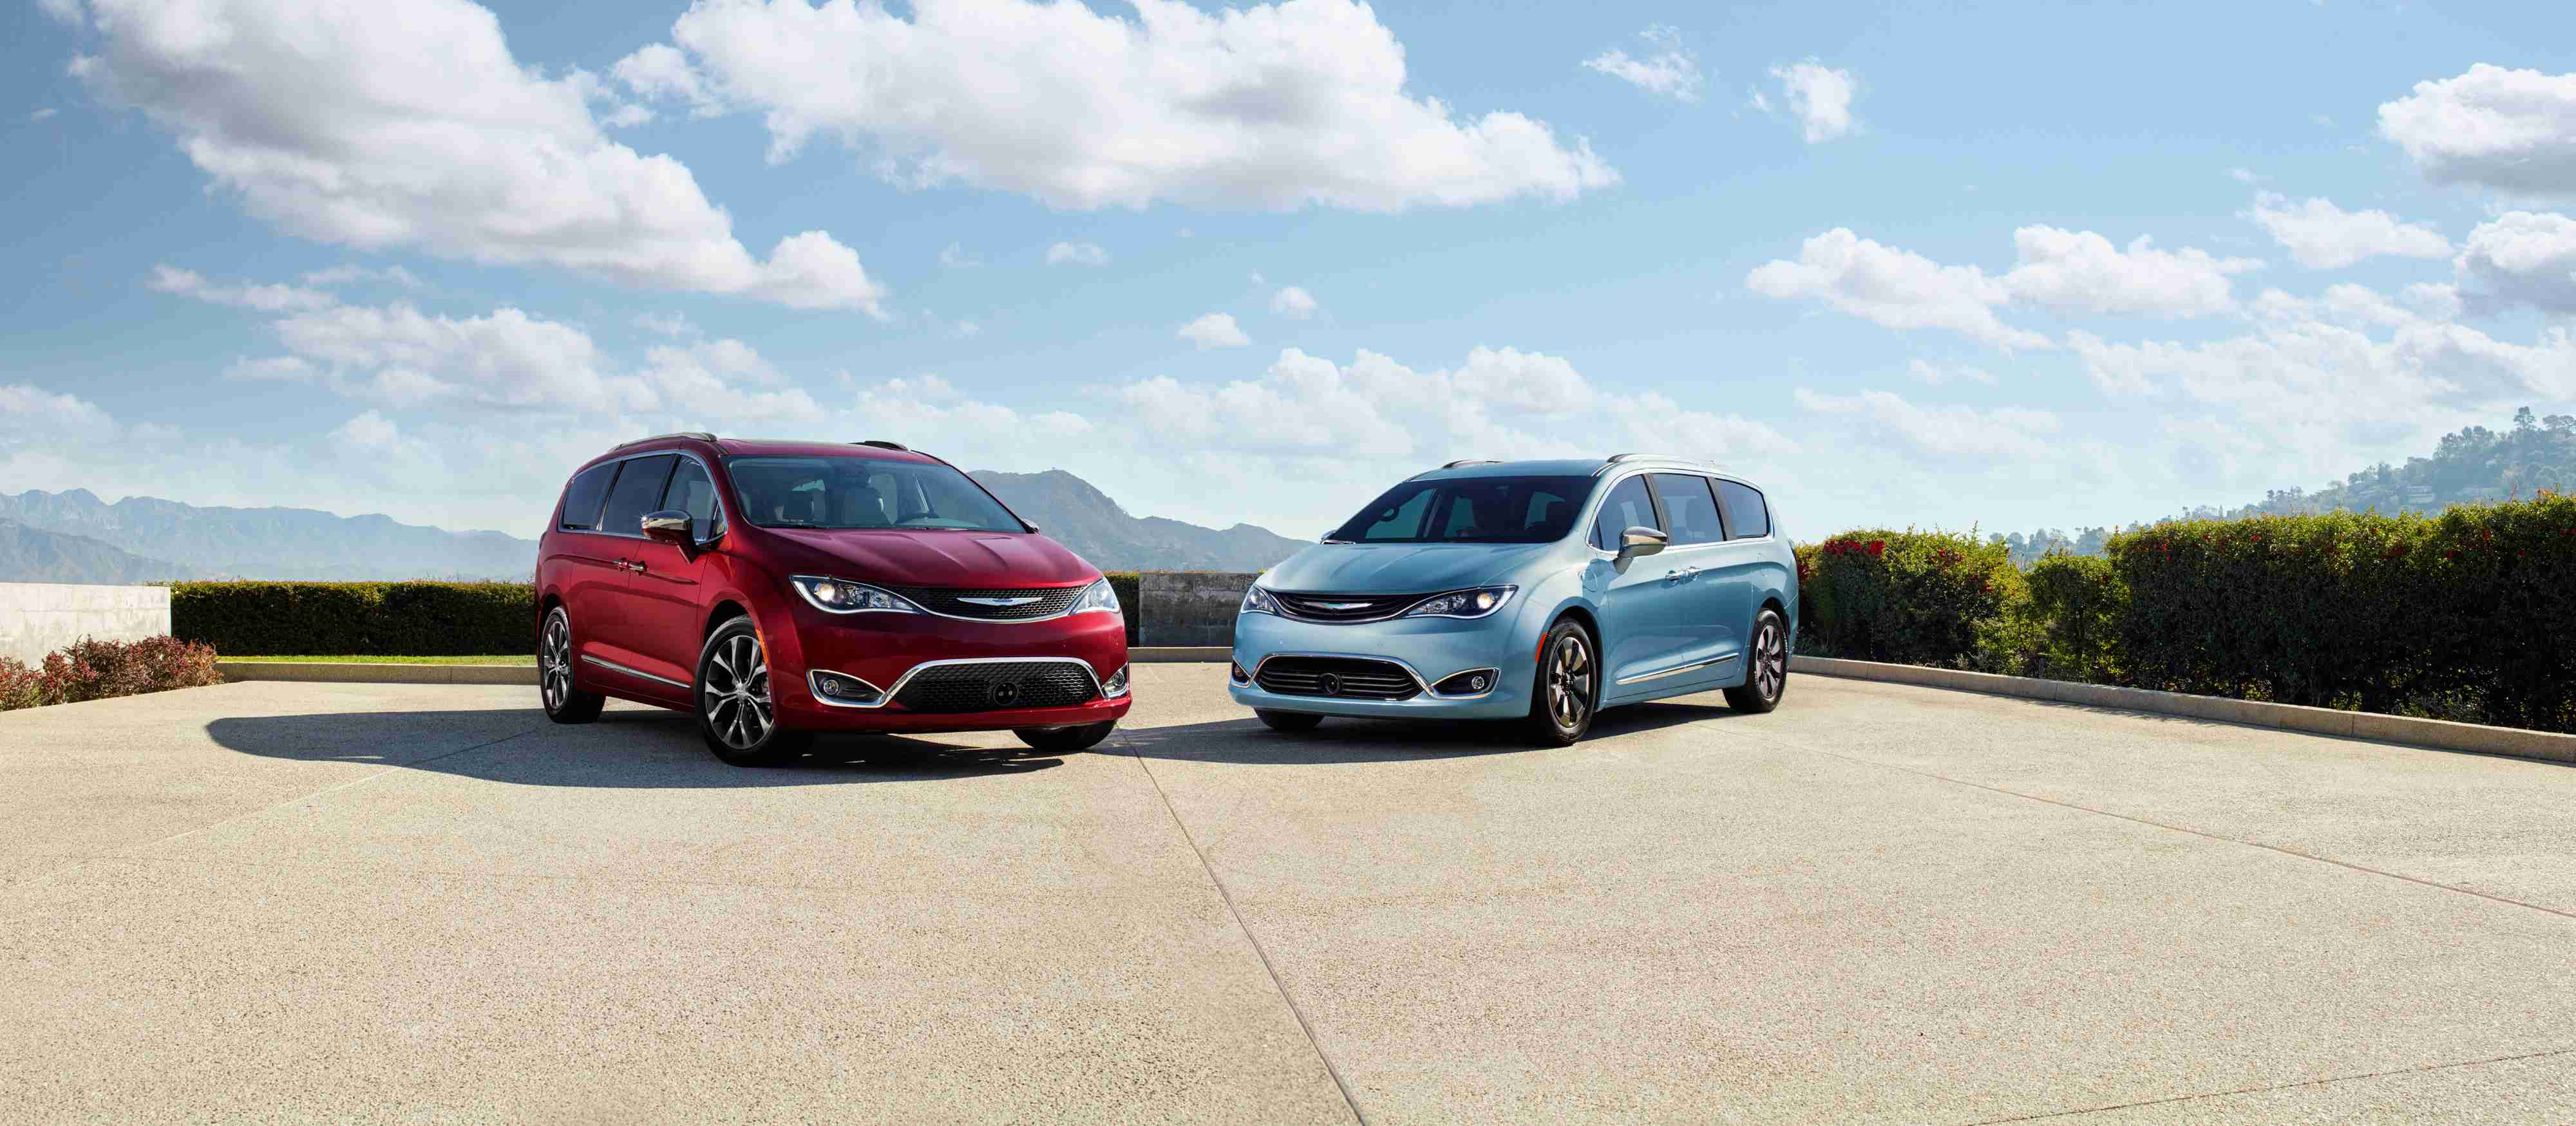 Chrysler Pacifica and Chrysler Town & Country Comparison